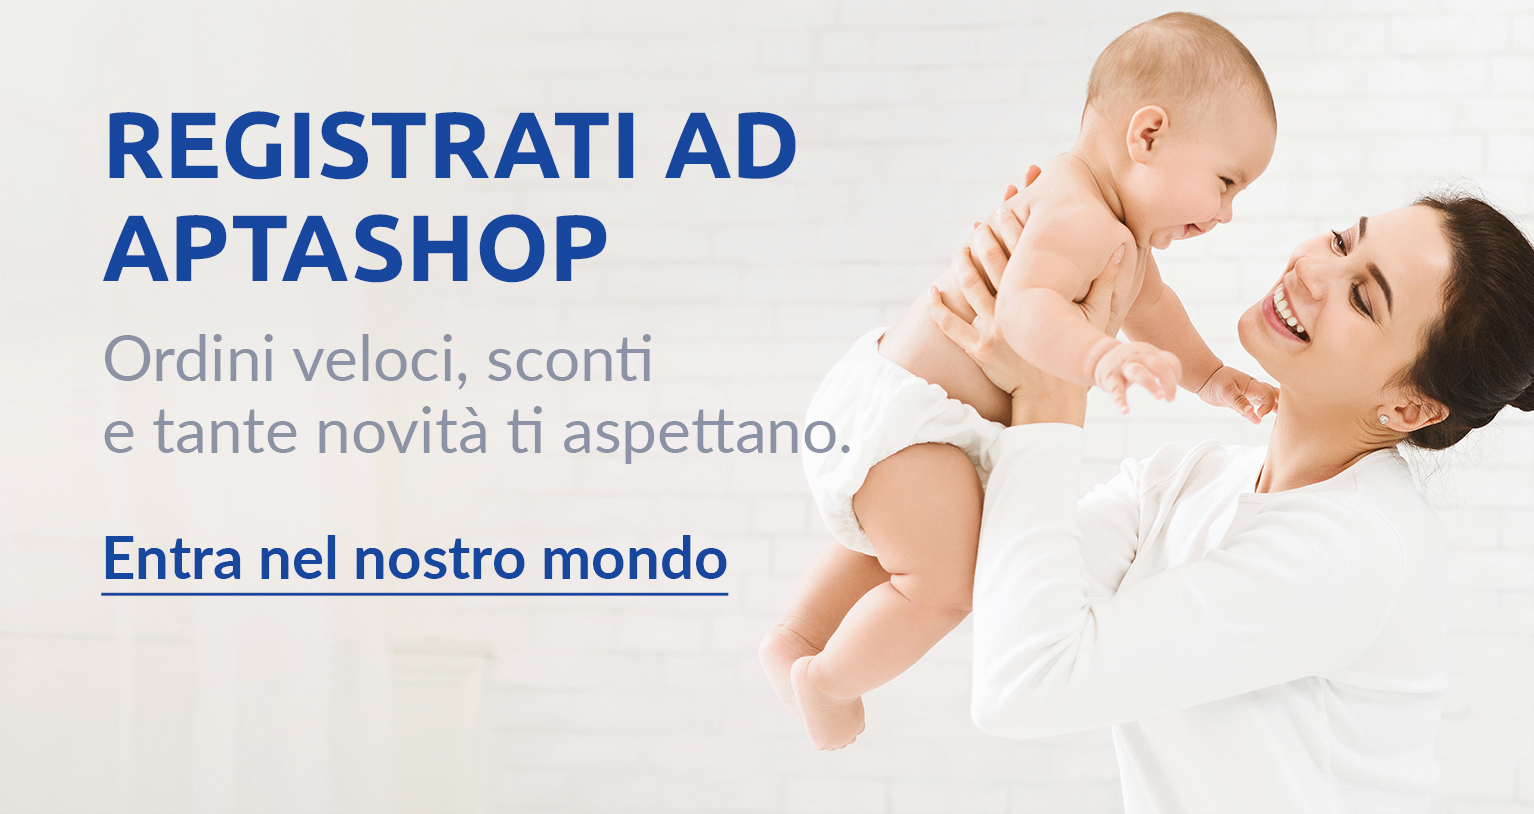 Registrati su Aptashop